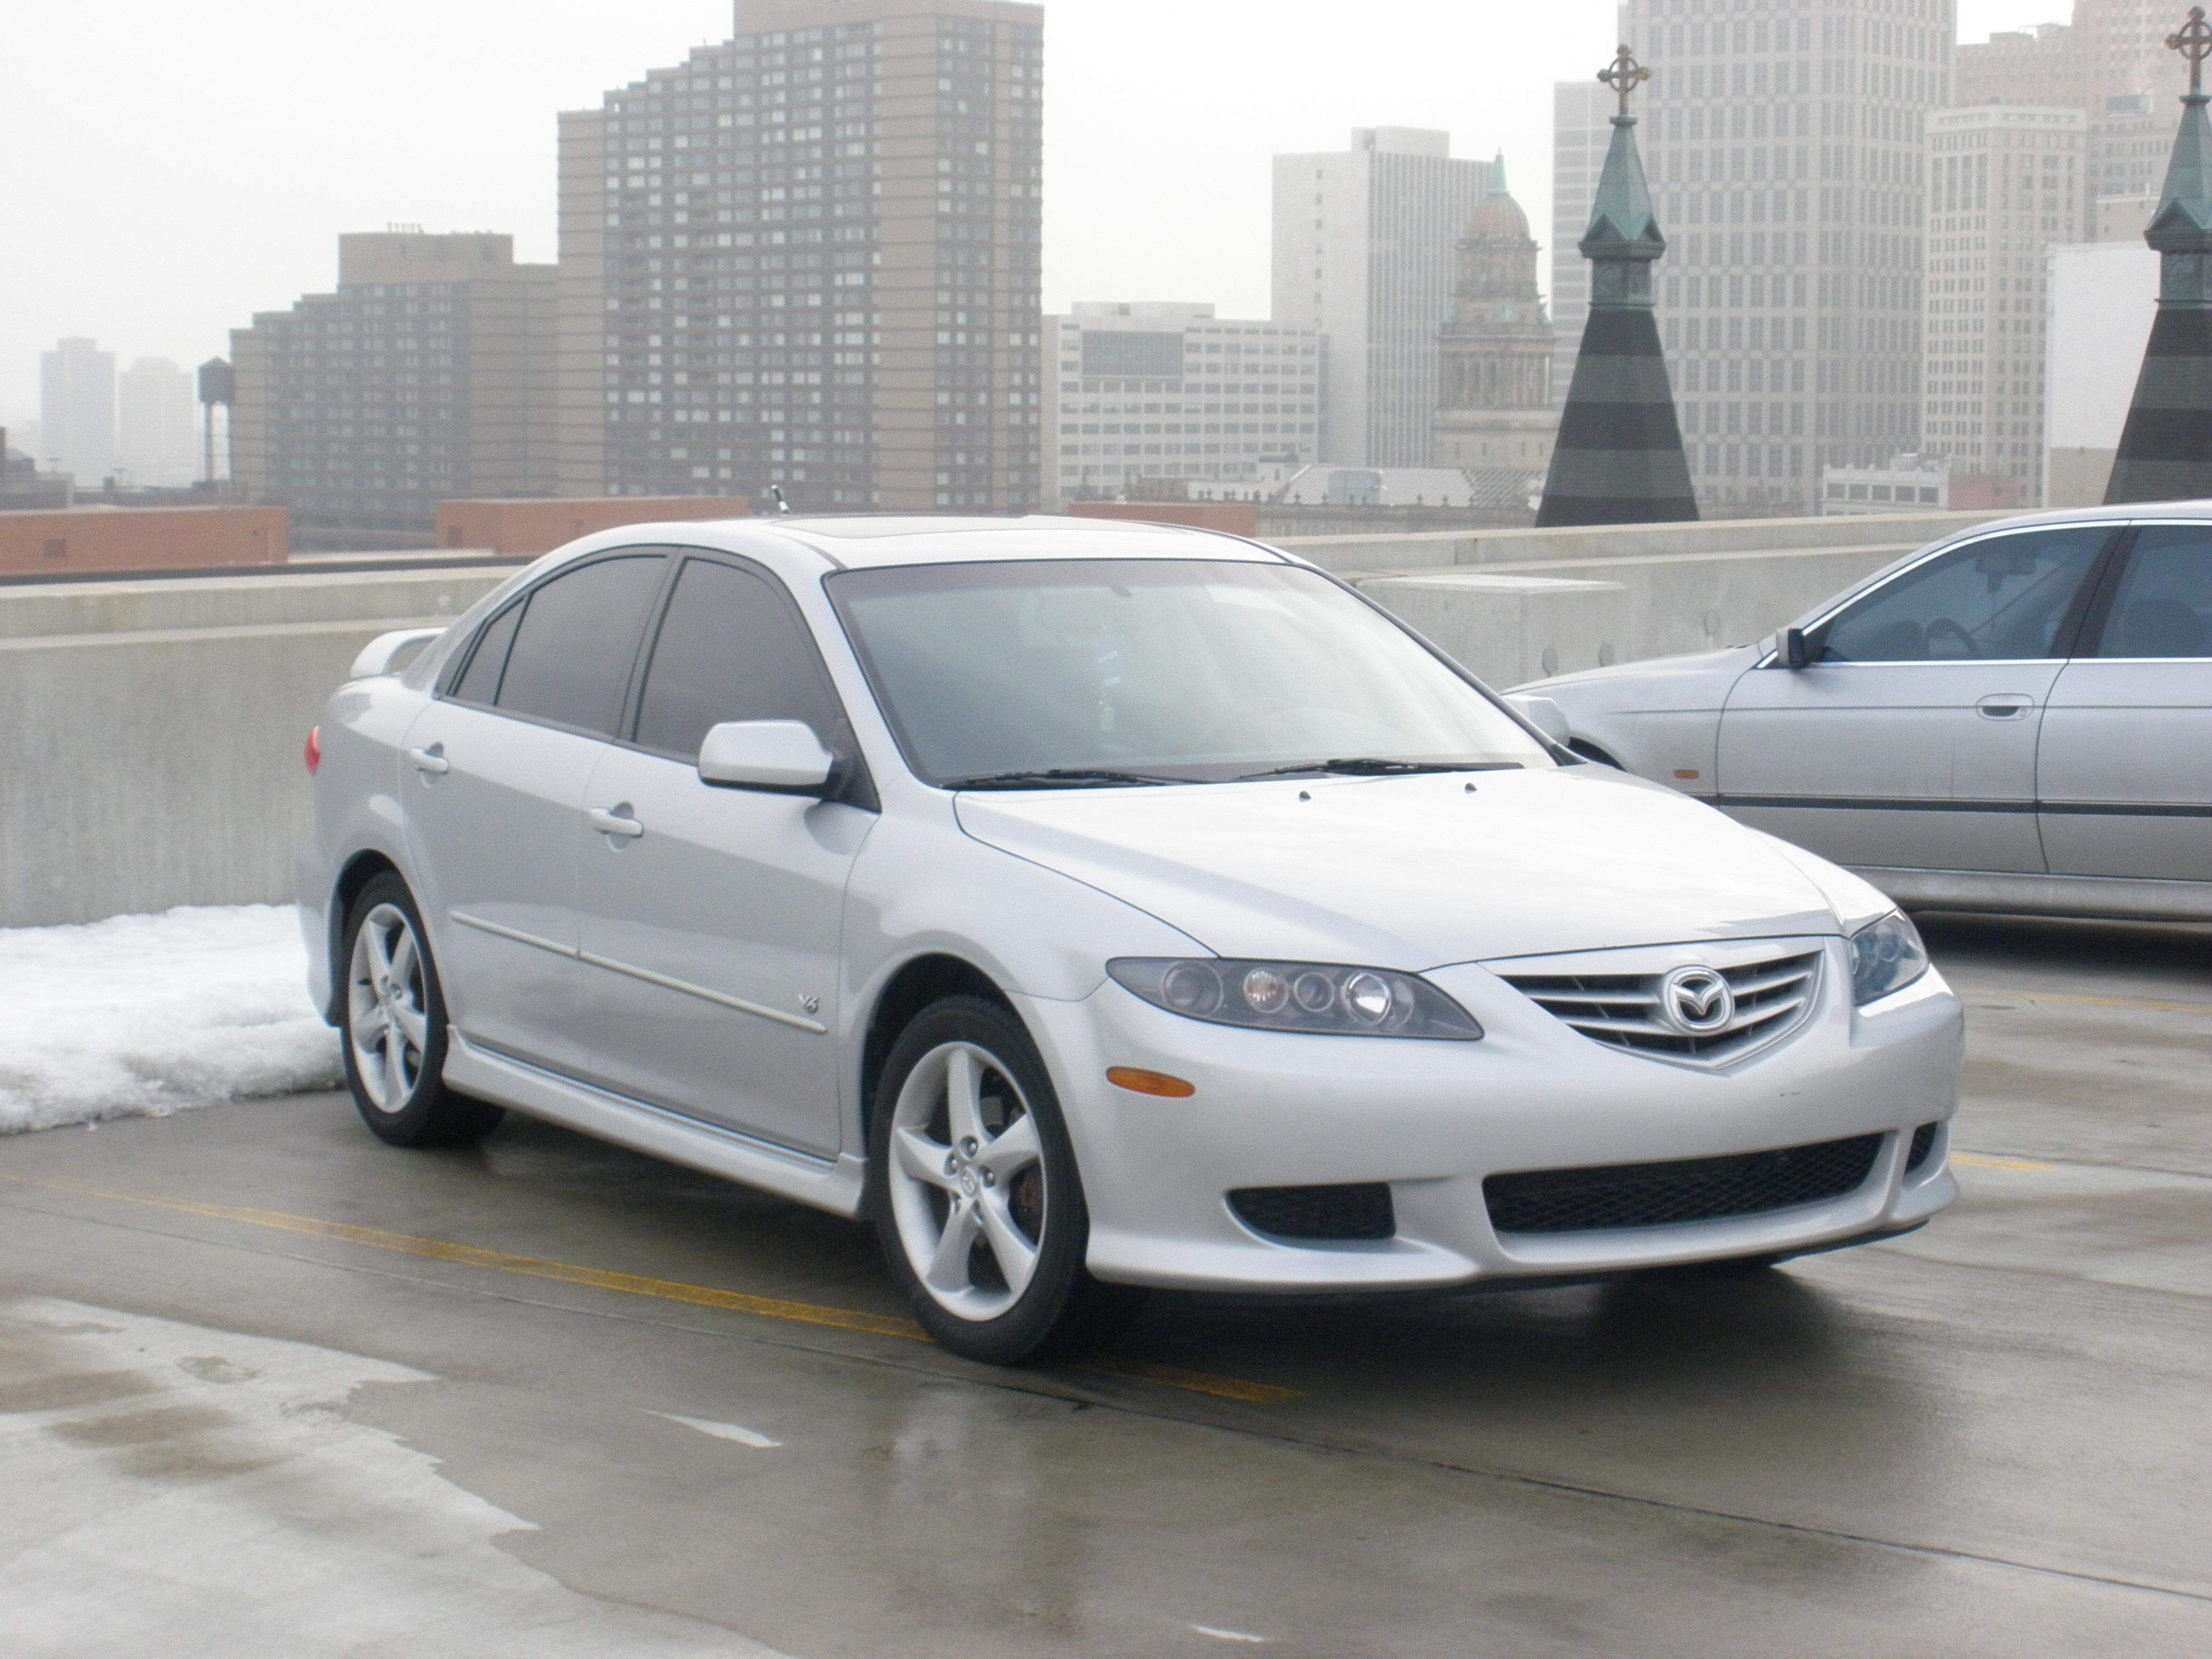 xanderm6s 39 s 2004 mazda mazda6 in warren mi. Black Bedroom Furniture Sets. Home Design Ideas